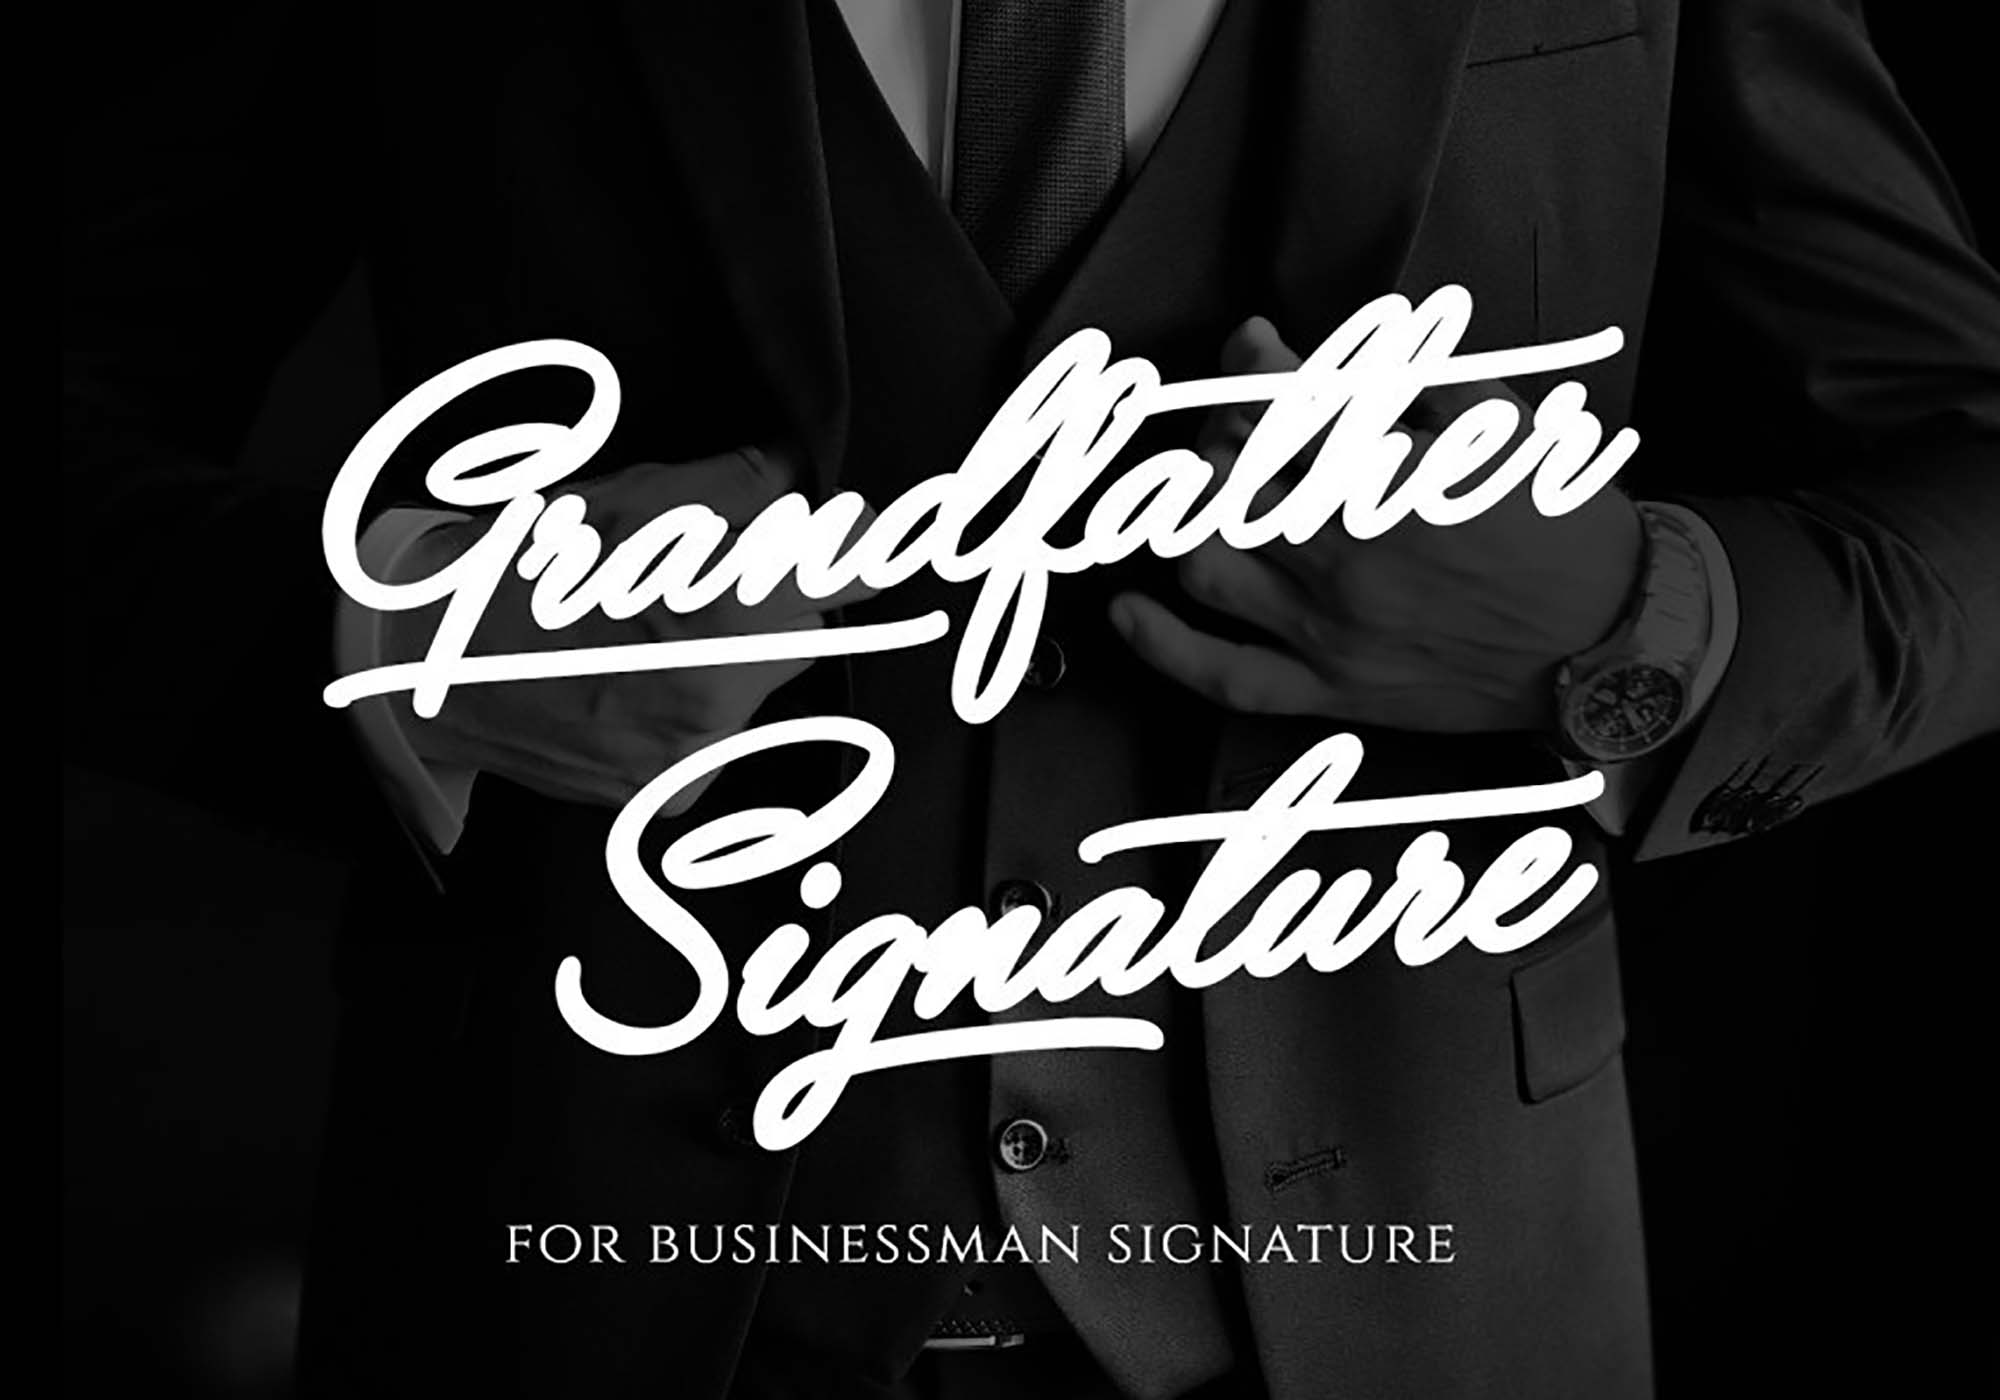 Grandfather Signature Font